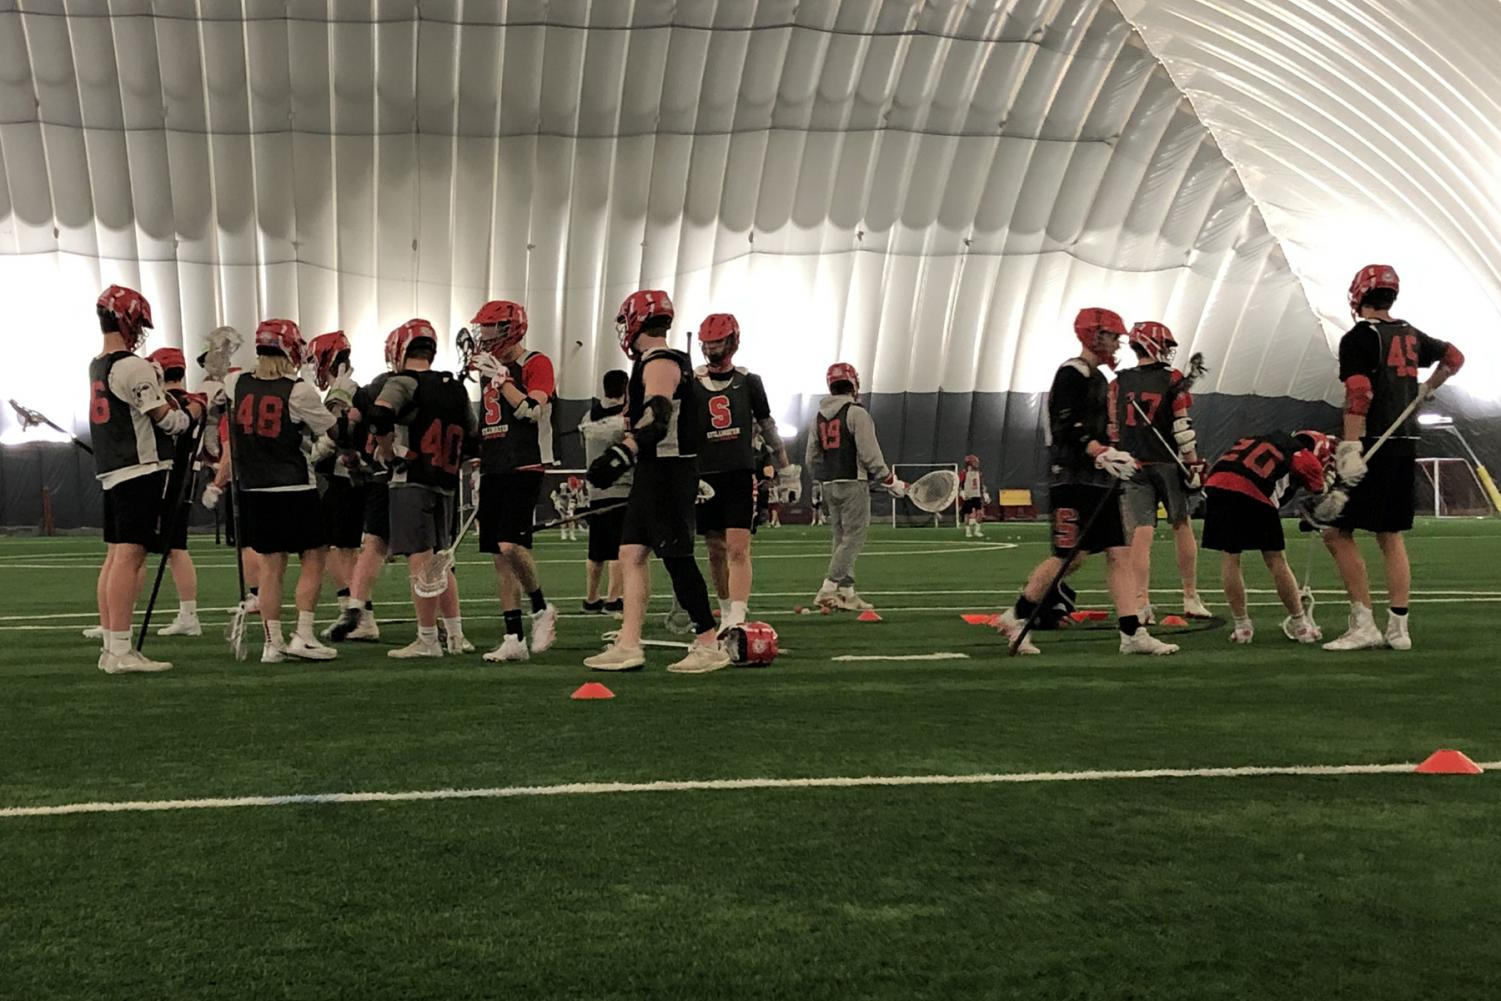 The+boys+lacrosse+team+practices+at+the+St.+Croix+Valley+Recreation+Center.+They+are+preparing+for+the+upcoming+season.